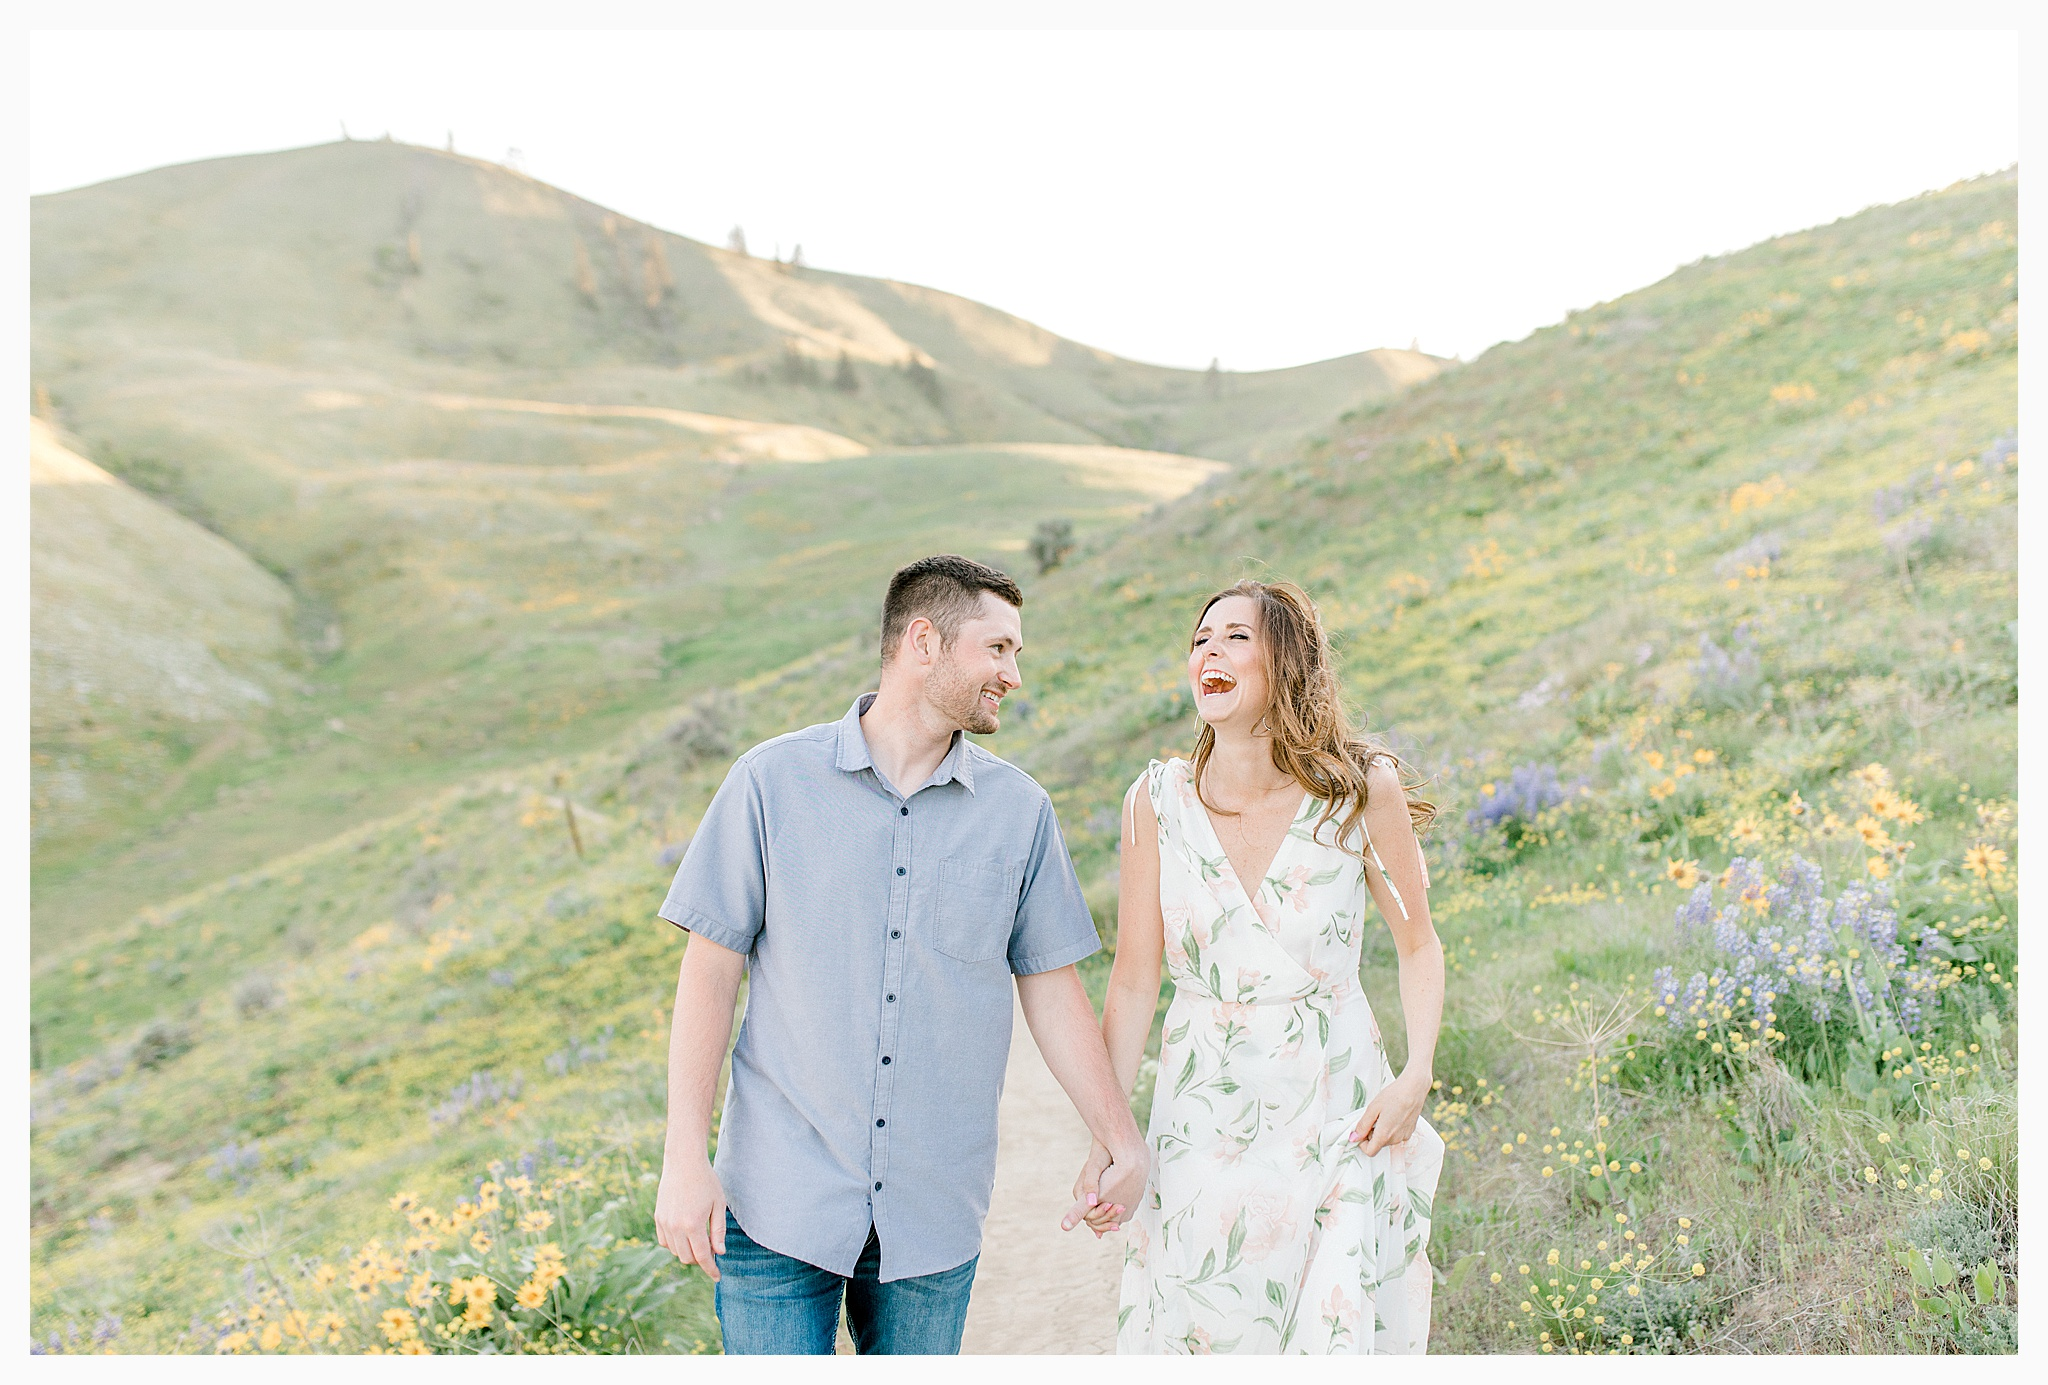 Engagement session amongst the wildflowers in Wenatchee, Washington | Engagement Session Outfit Inspiration for Wedding Photography with Emma Rose Company | Light and Airy PNW Photographer, Seattle Bride_0012.jpg